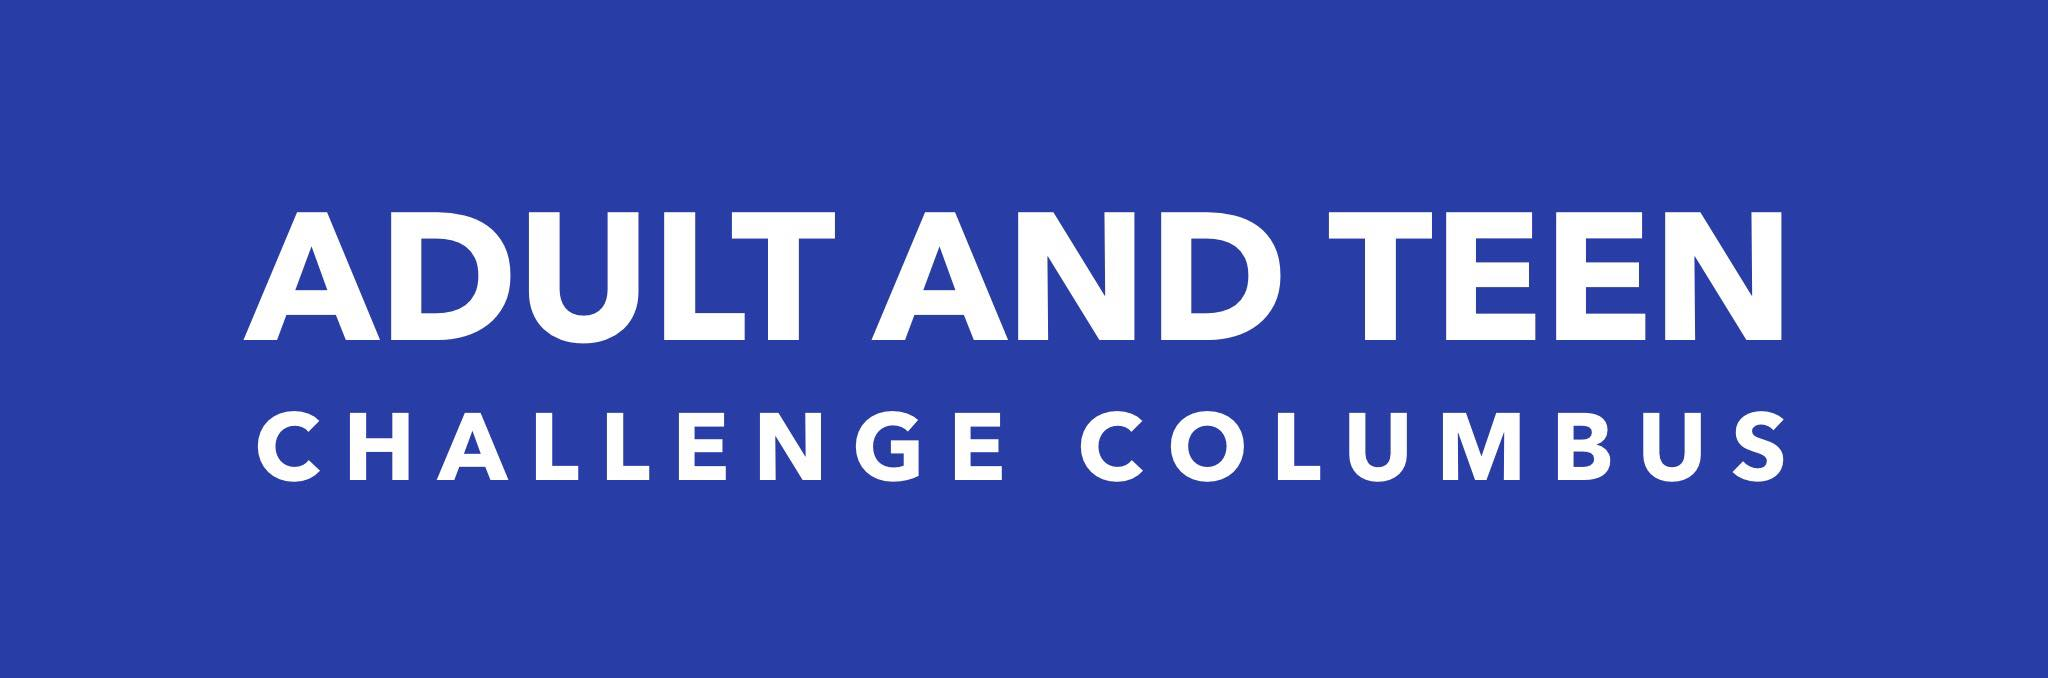 ADULT AND TEEN CHALLENGE COLUMBUS